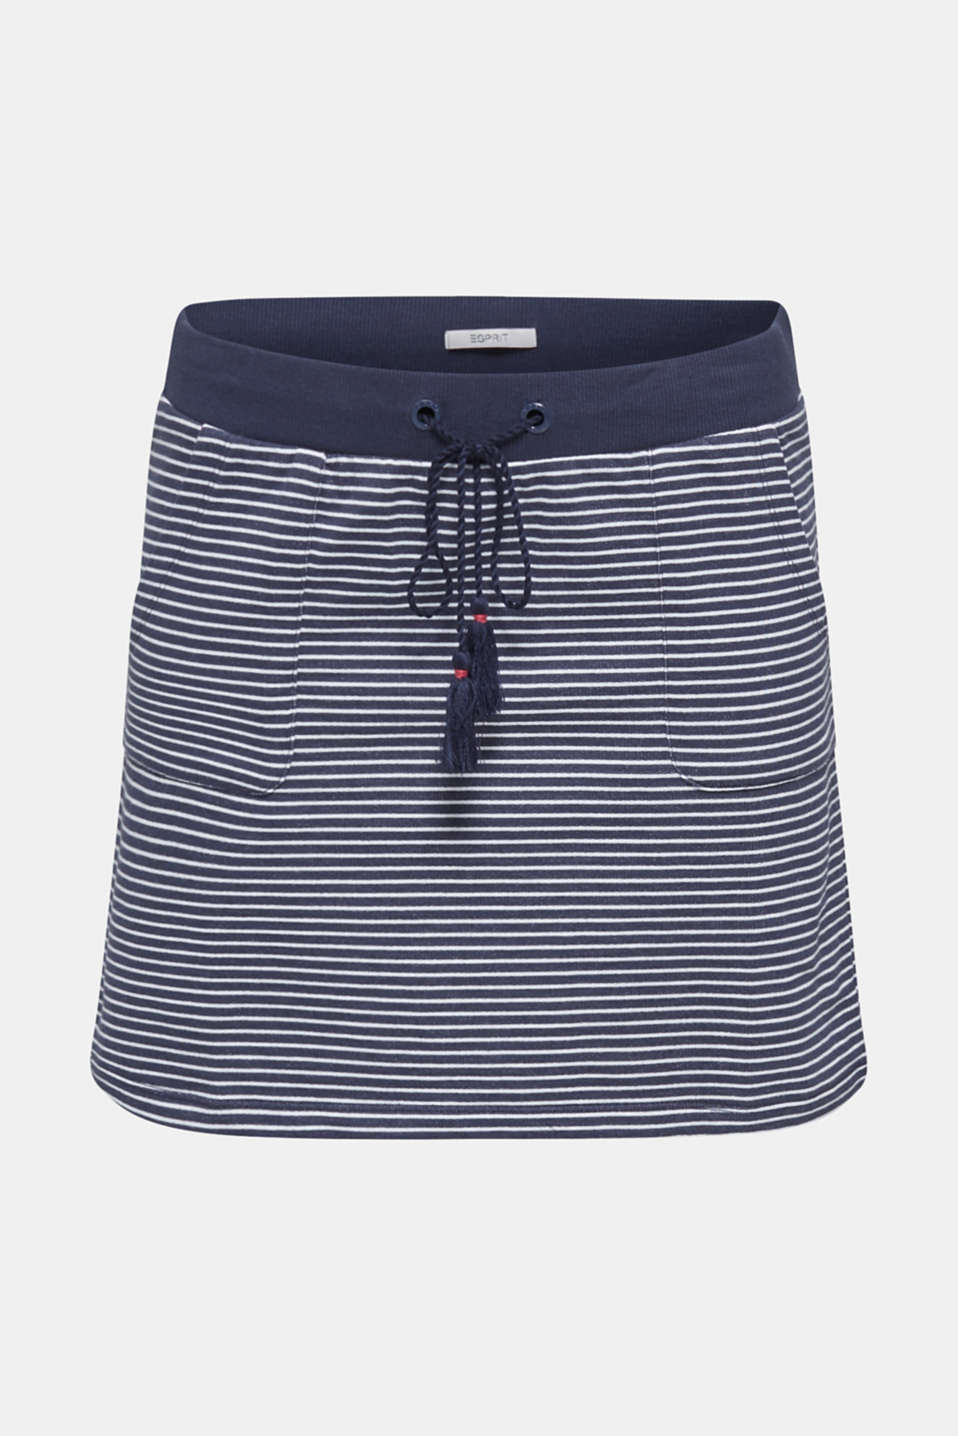 Jersey skirt made of 100% cotton, NAVY 2, detail image number 2